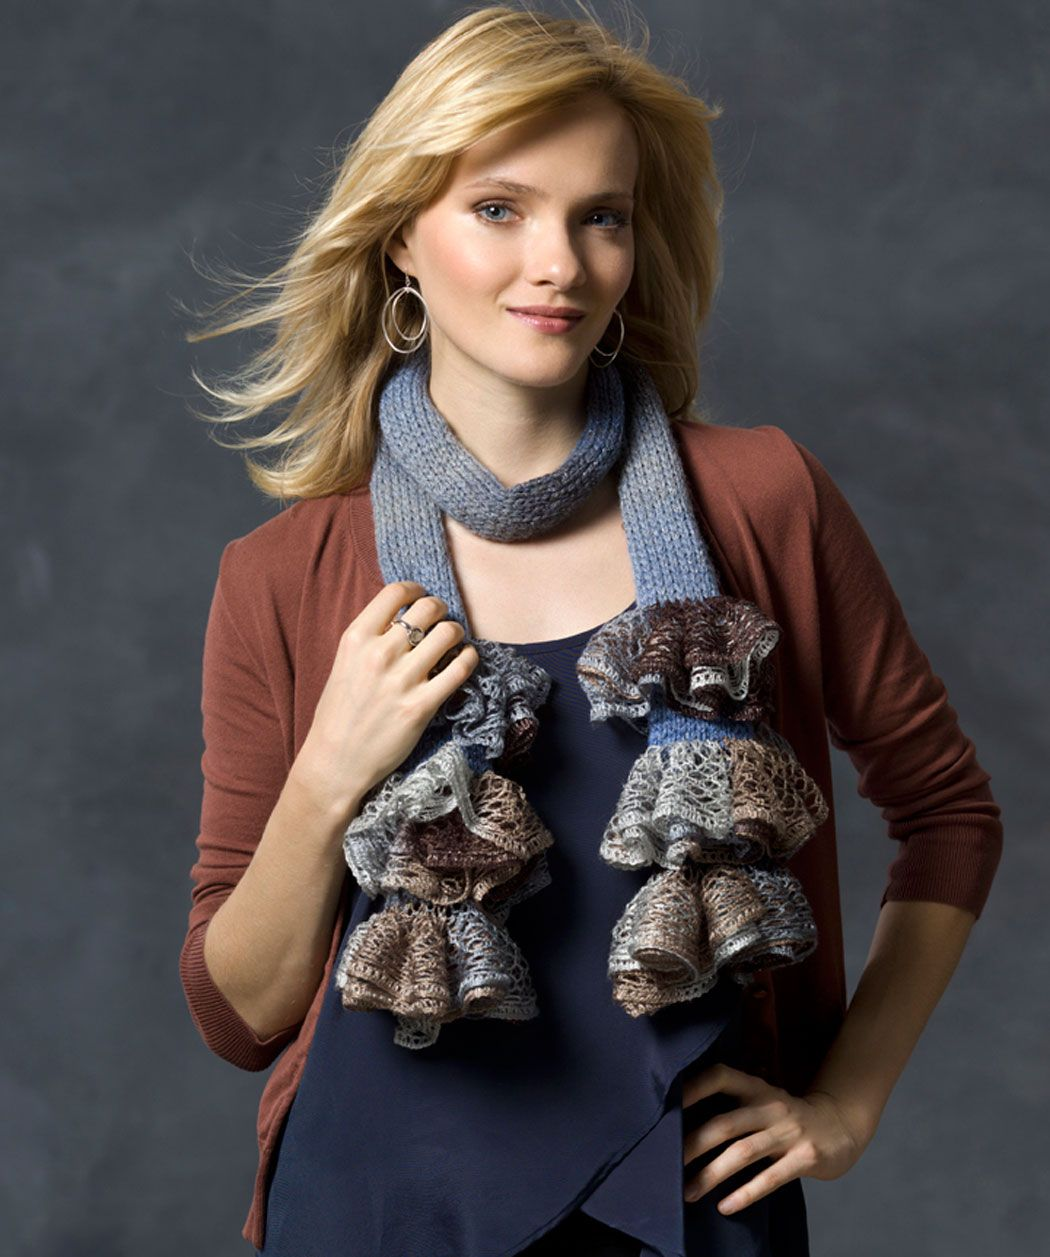 Ruffle Me Scarf Knitting Pattern | Red Heart | scarves | Pinterest ...